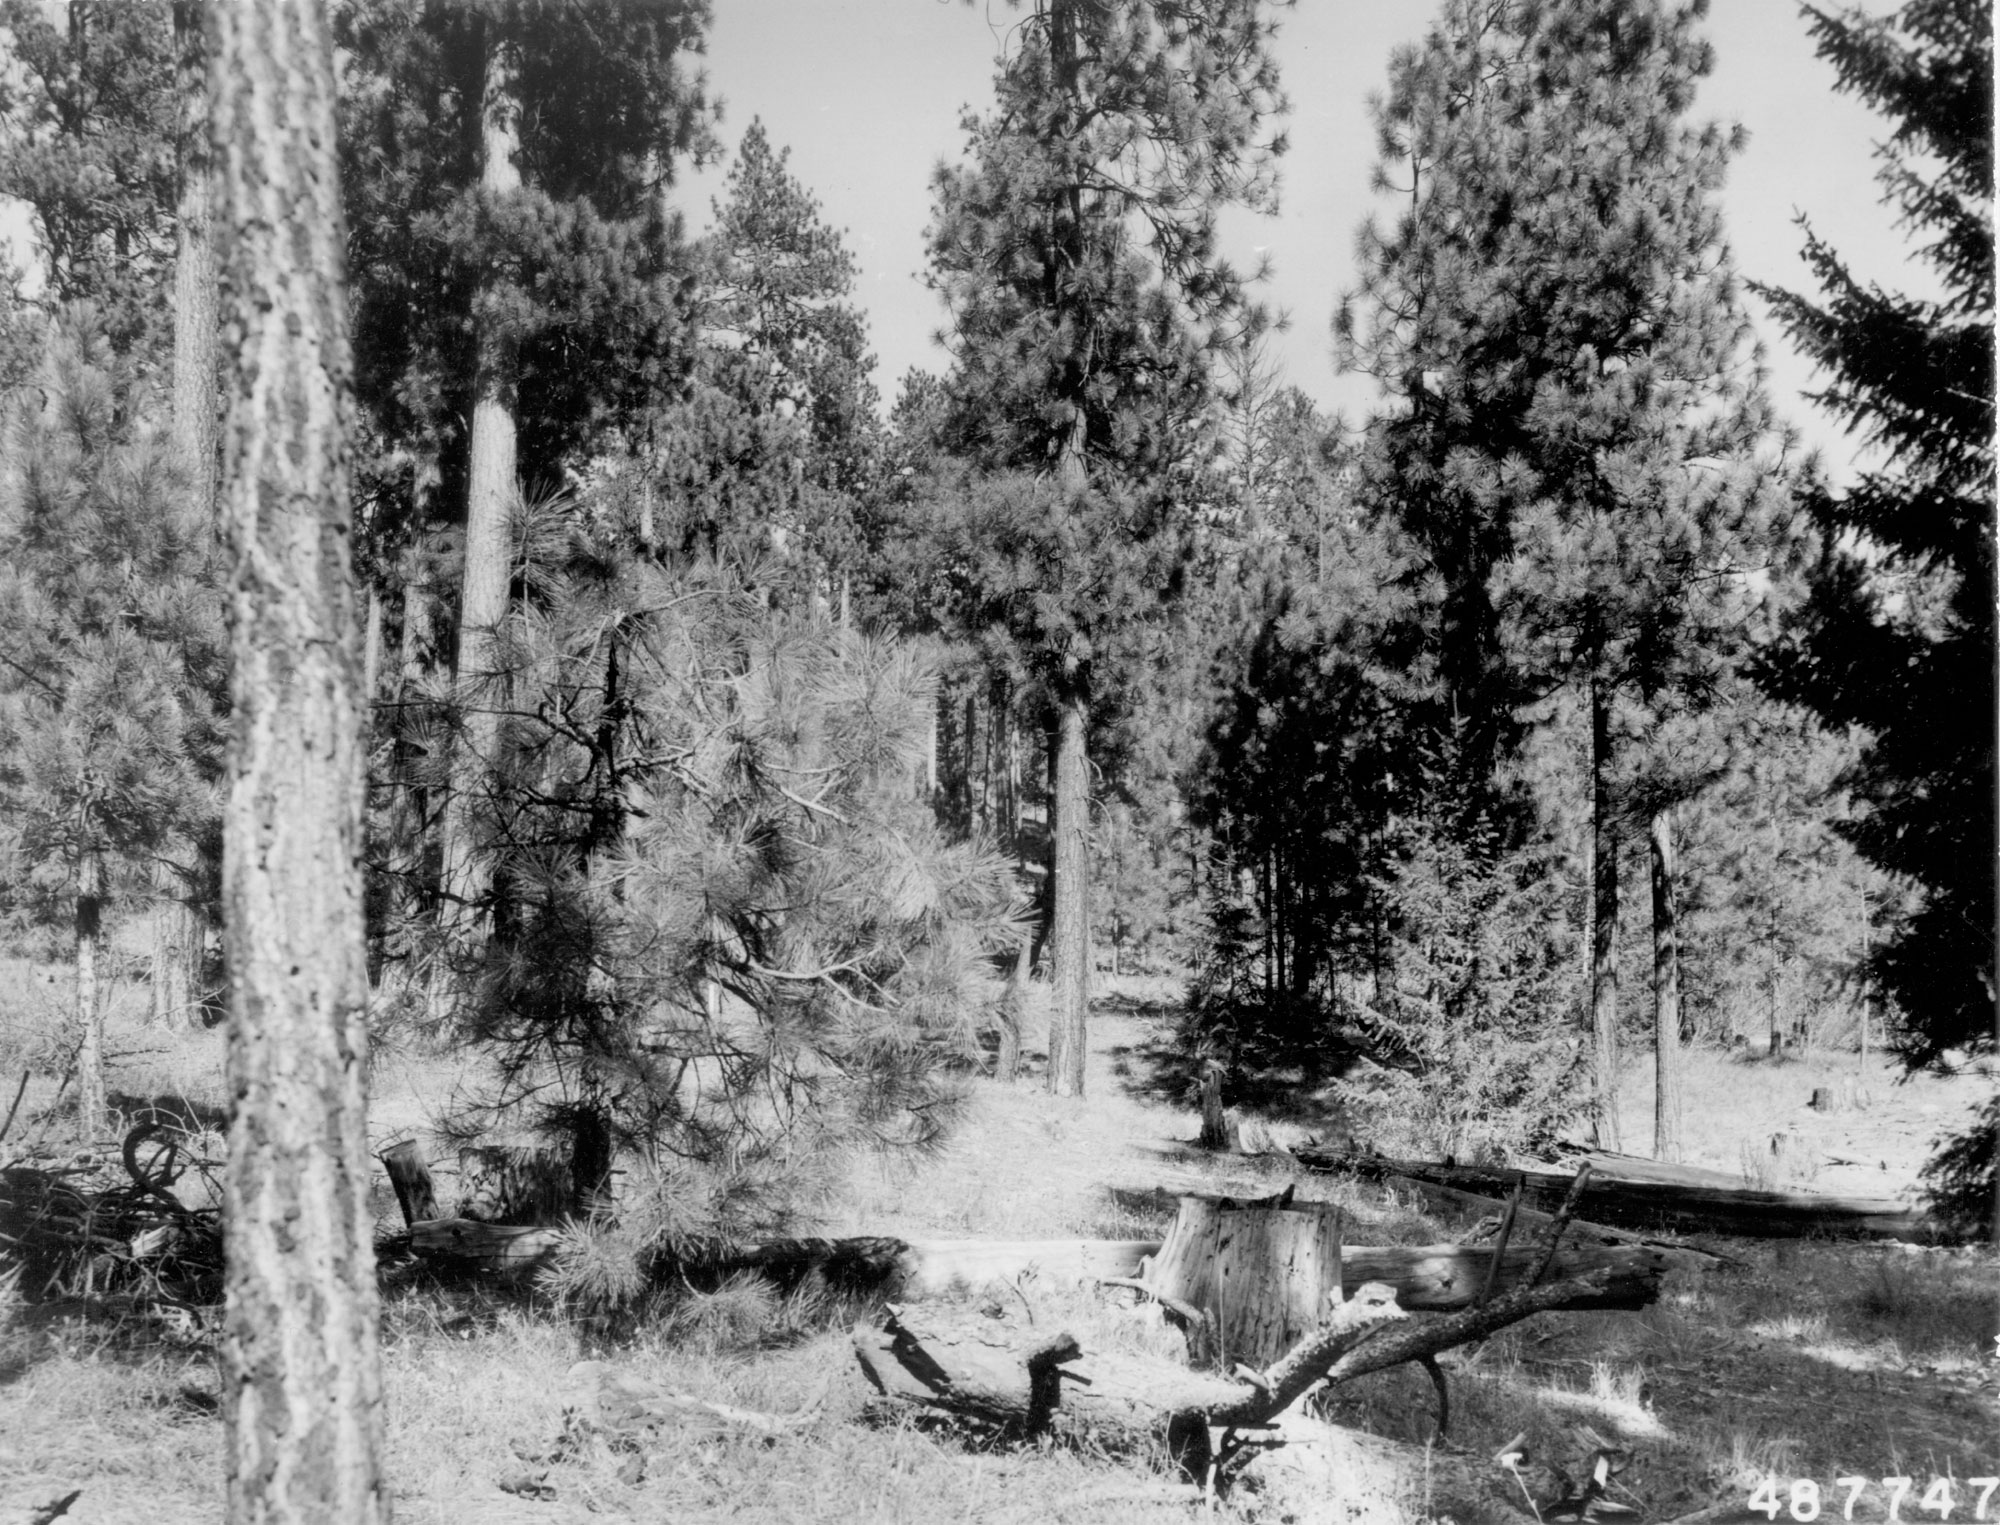 1958. 49 years later. A shelterwood cut in 1952 removed several of the merchantable trees and left slash on the ground. Plants occupying sites near left edge of photo appear to be betterbrush.